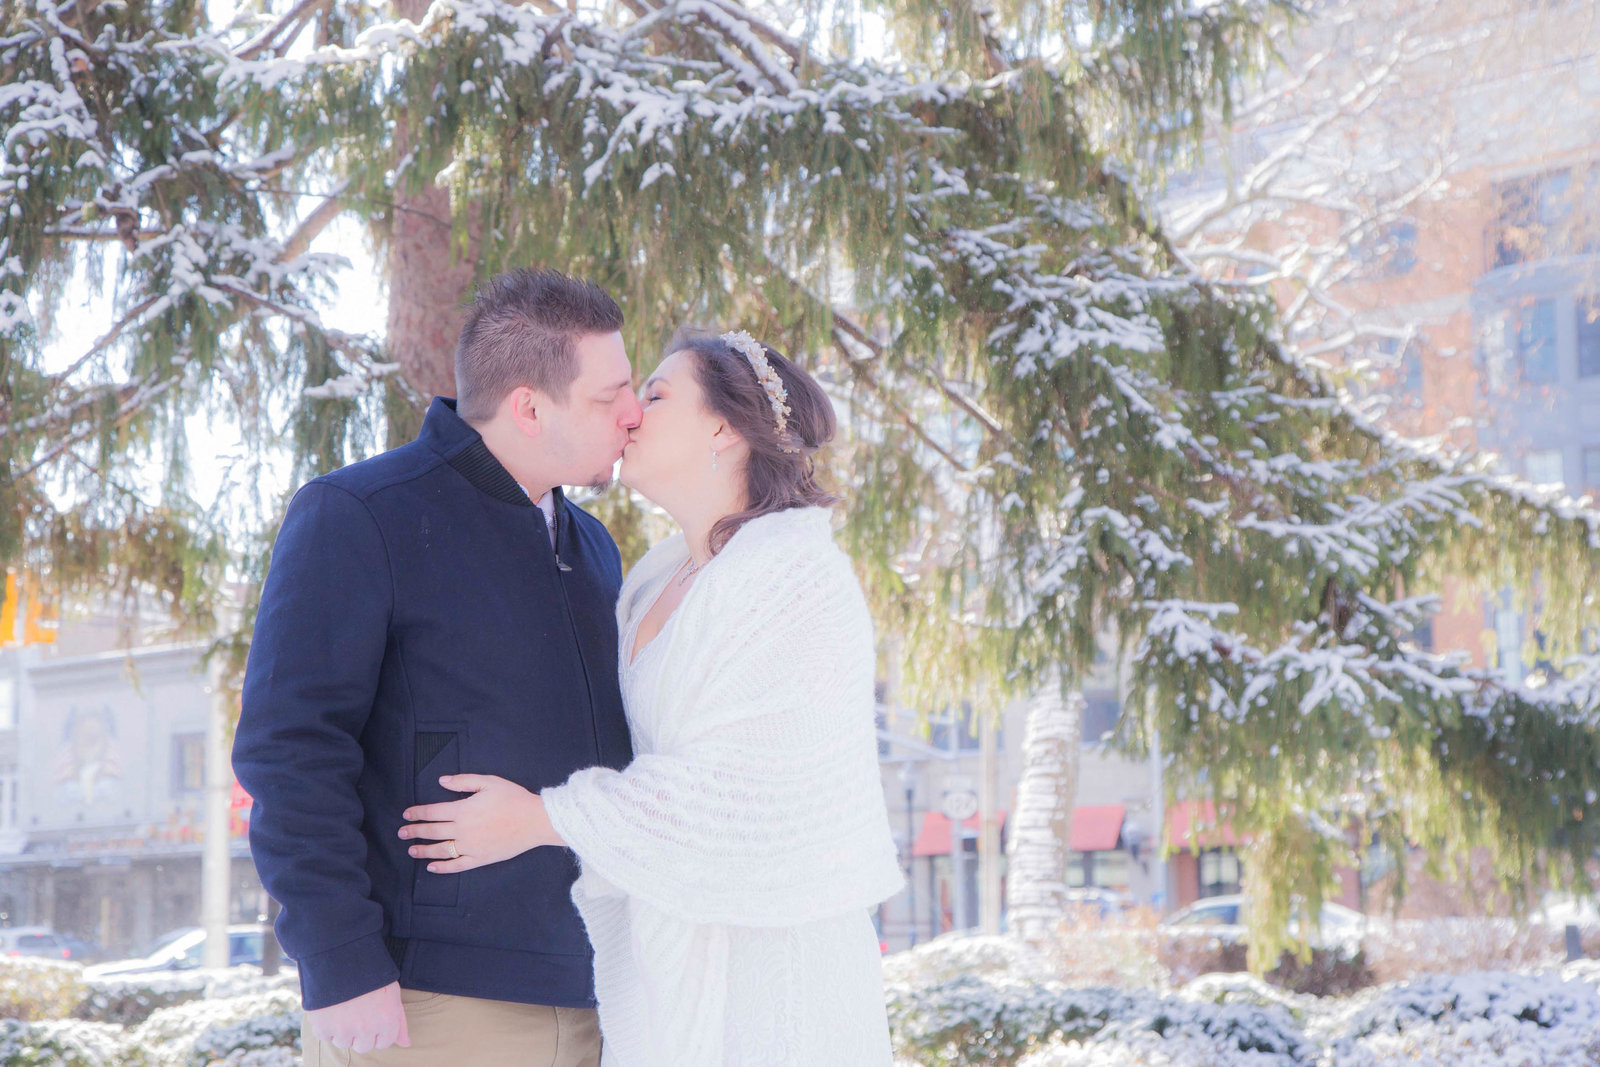 Bride and groom kiss in park while snowing on their elopement day.